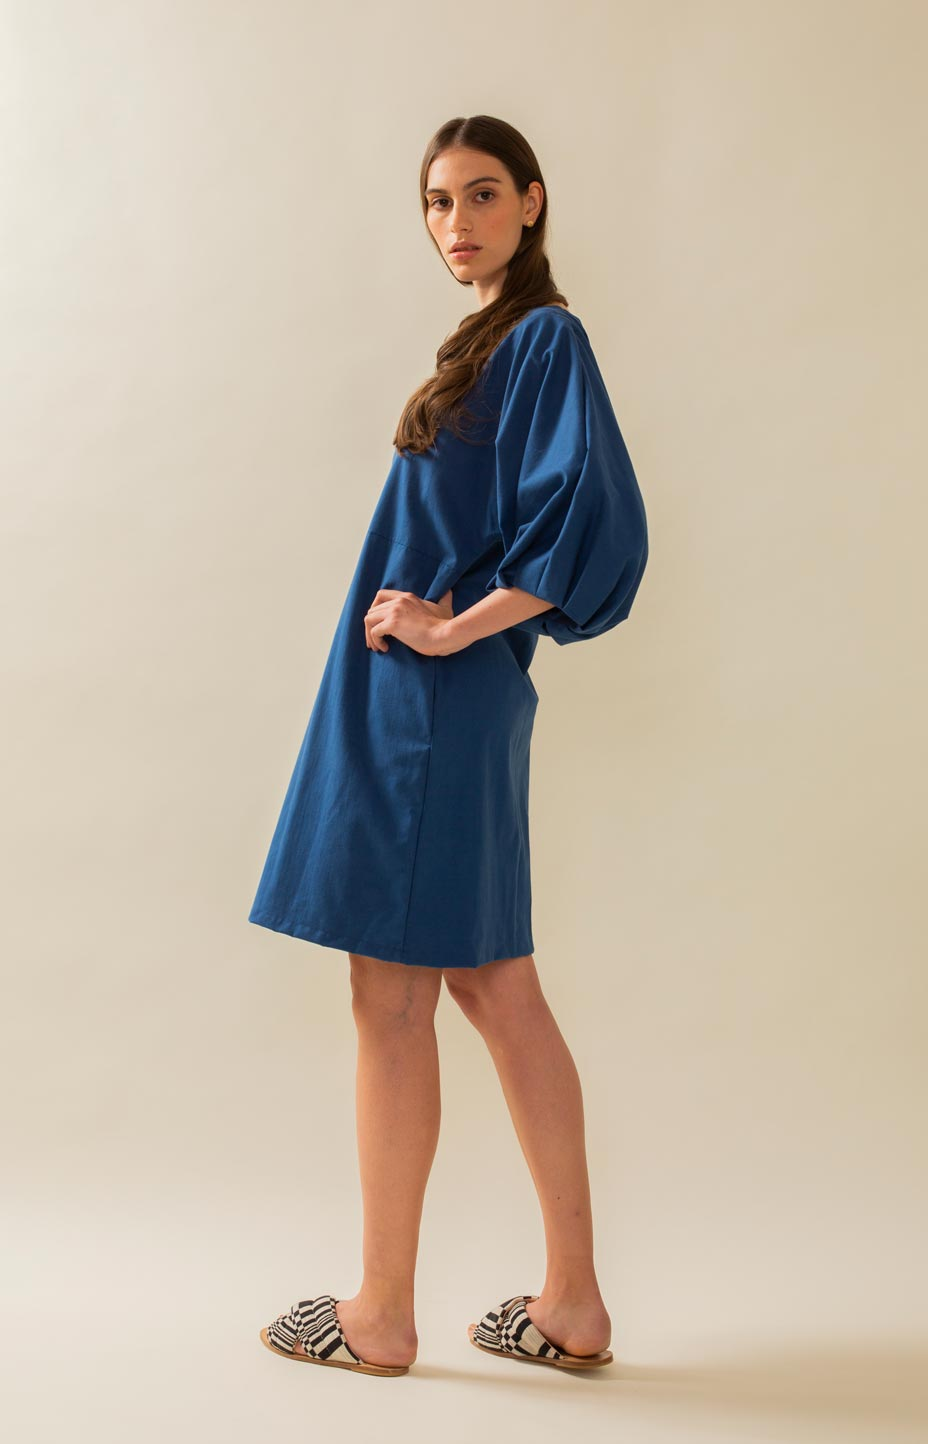 TAUKO dress with puff sleeves